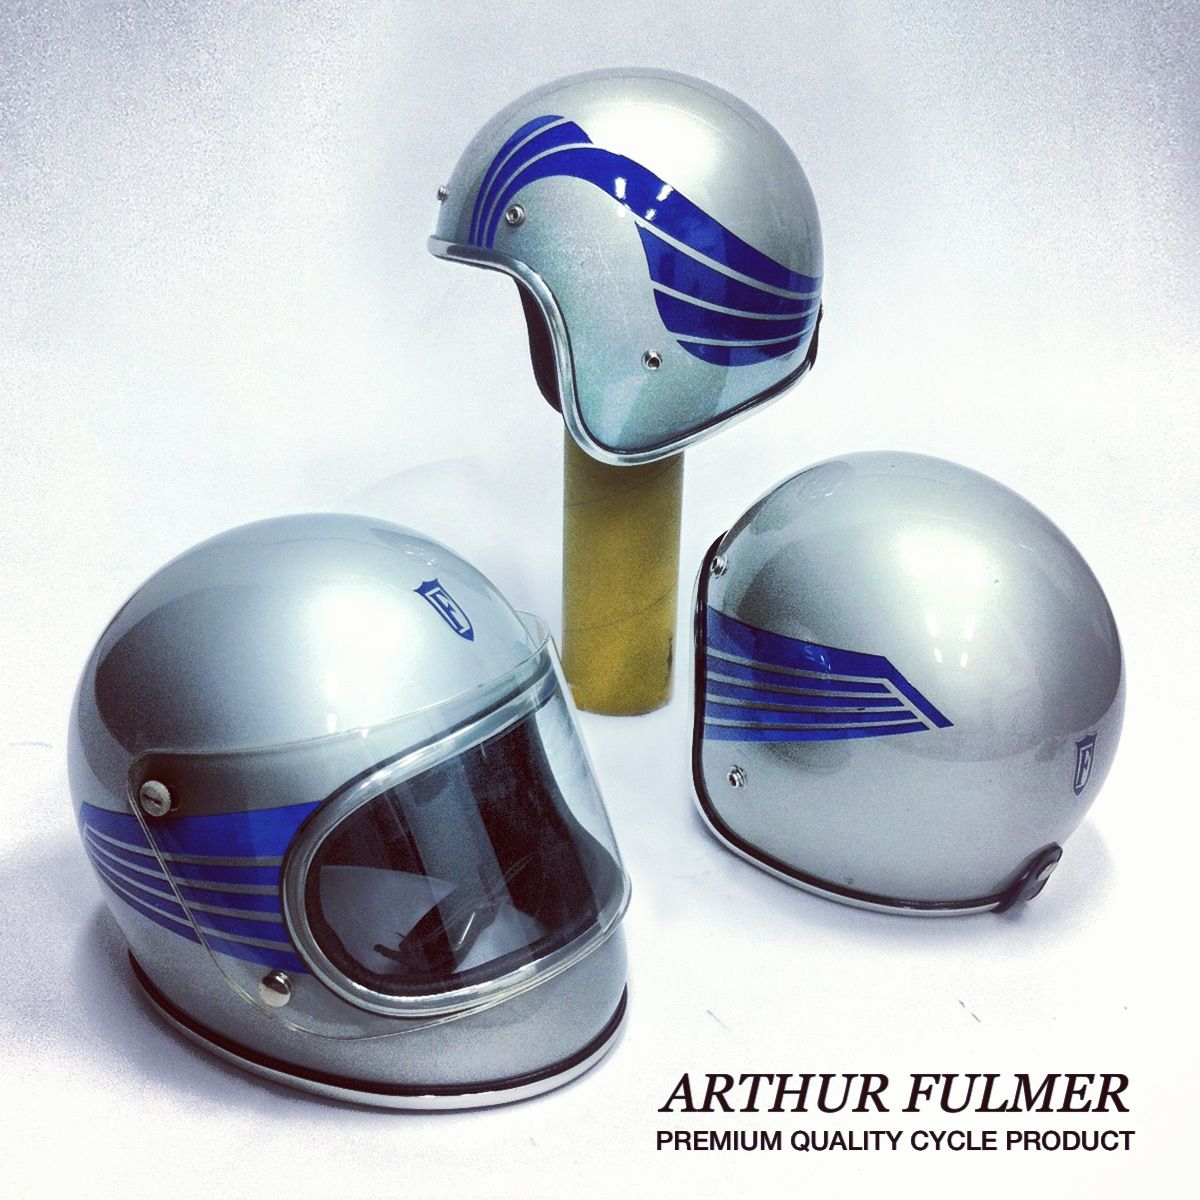 63bcbe70 ARTHUR FULMER HELMET | HELMET COLLECTION | Helmet, Riding helmets ...